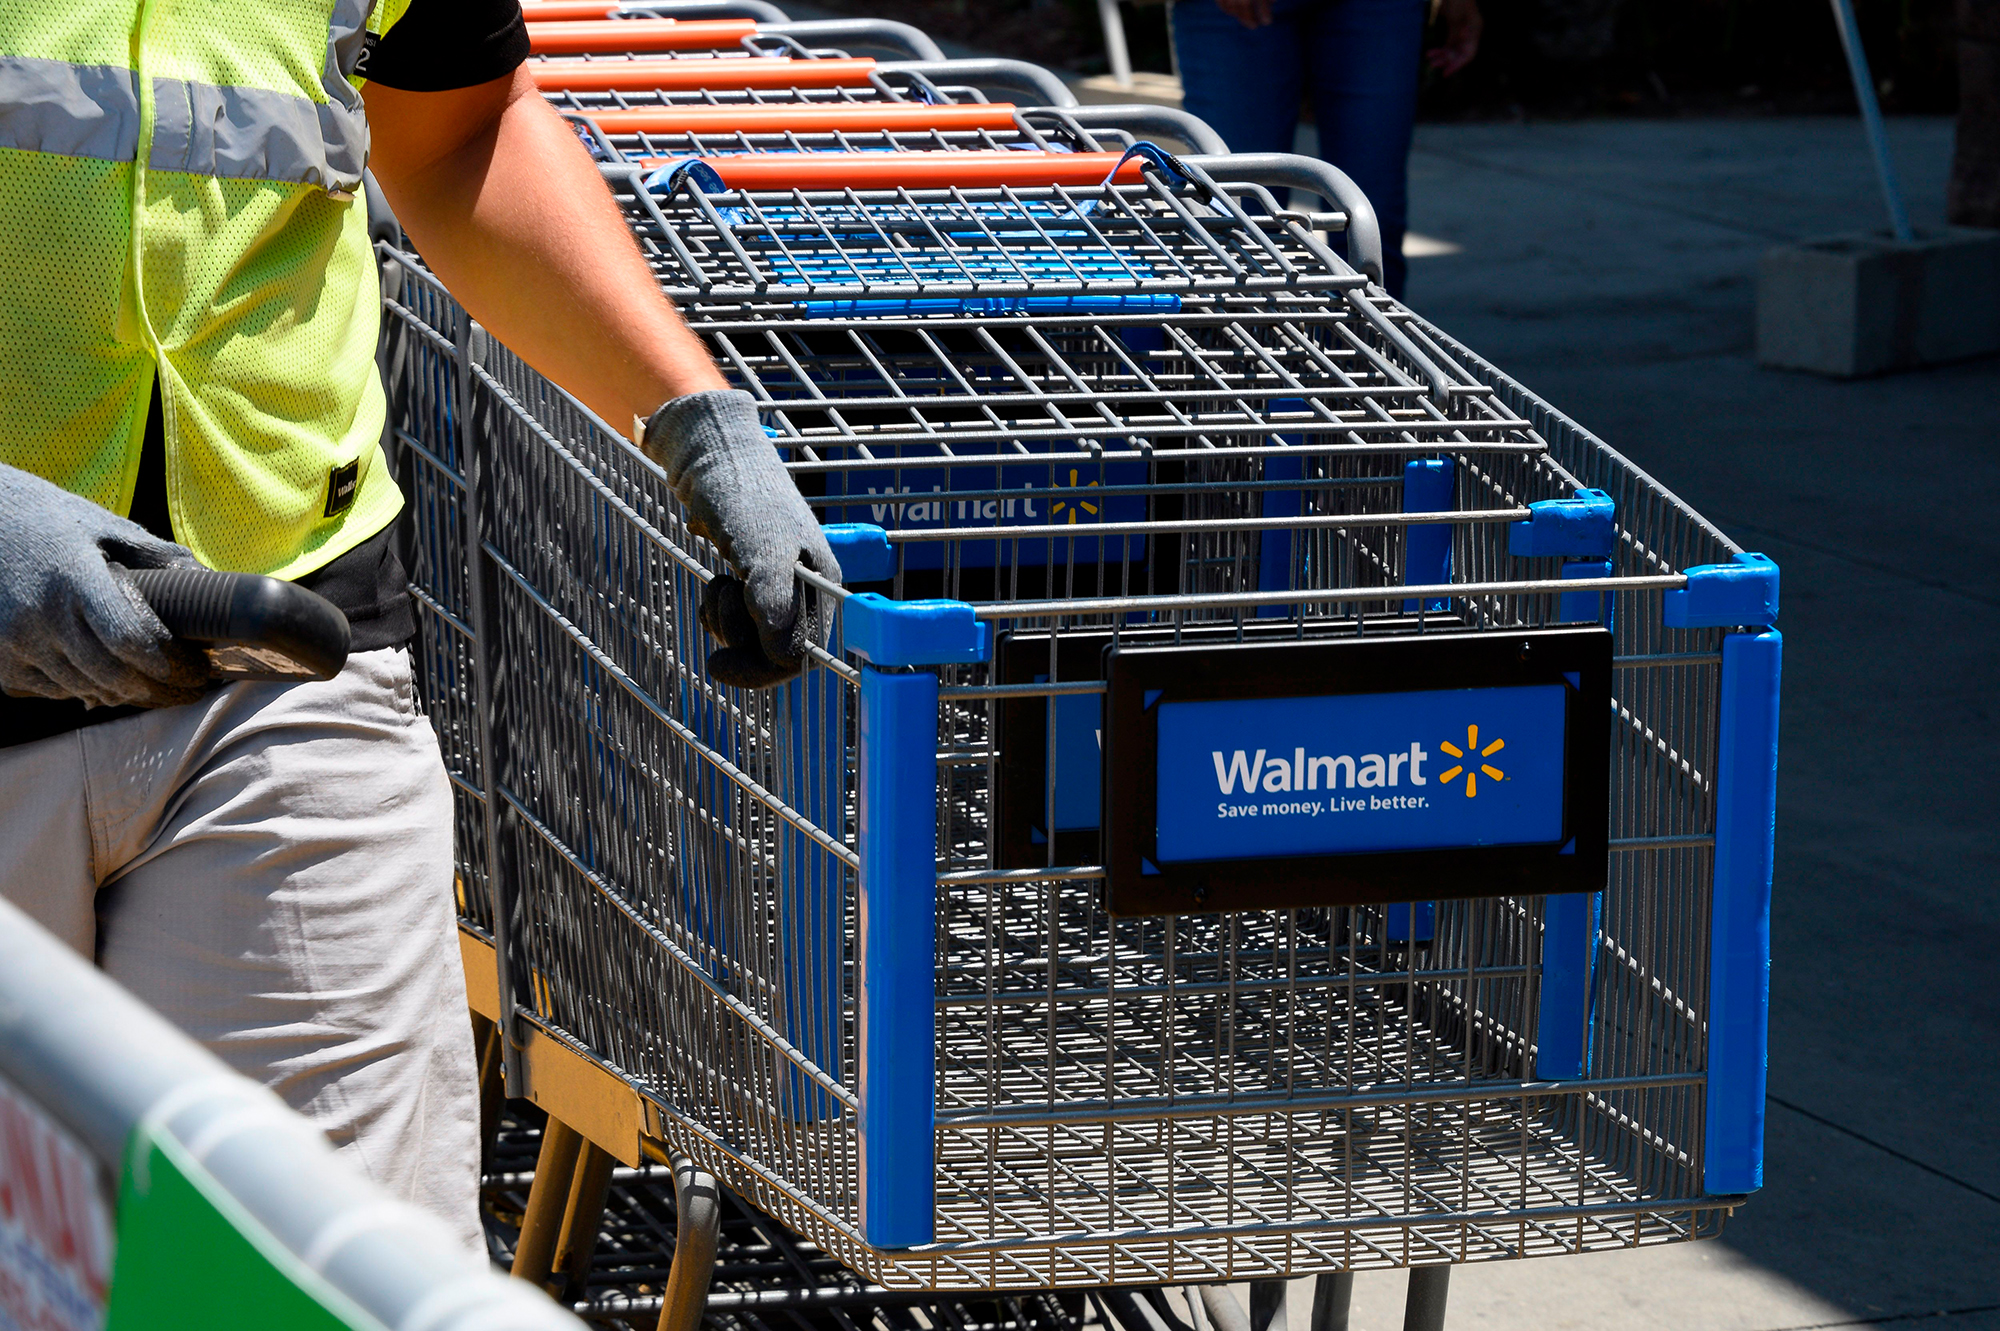 Walmart is paying its workers $388 million in holiday bonuses. Critics say it's not nearly enough